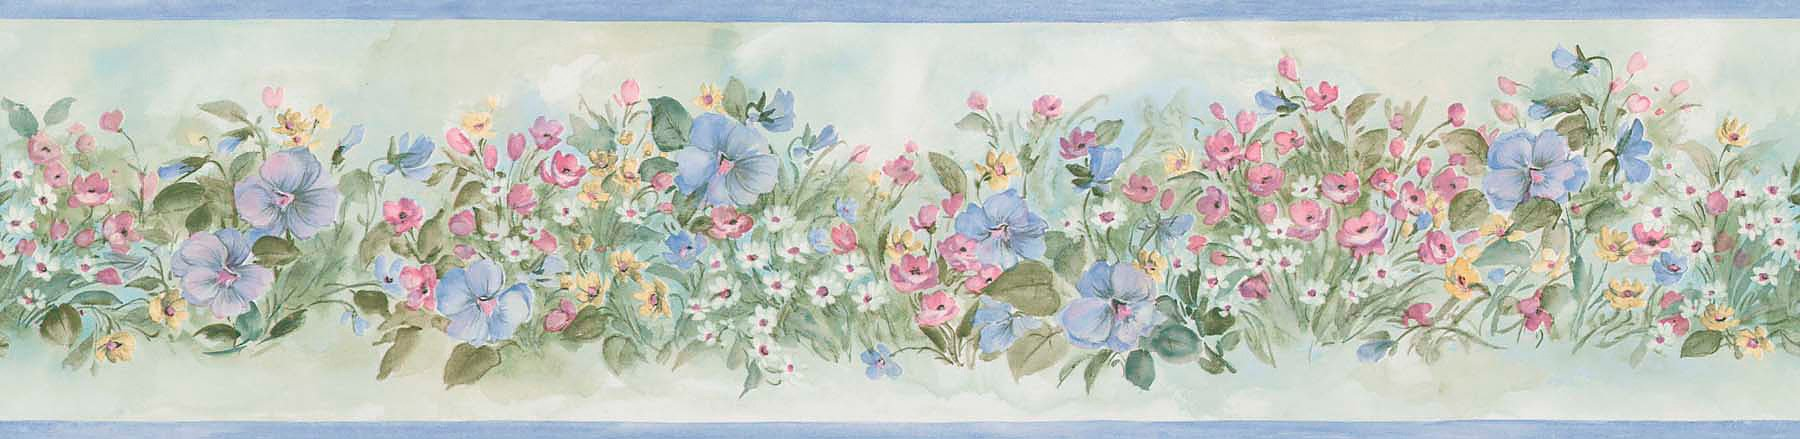 Brewster 418B025 Borders and More Watercolor Floral Wall Border, 5.125-Inch by 180-Inch